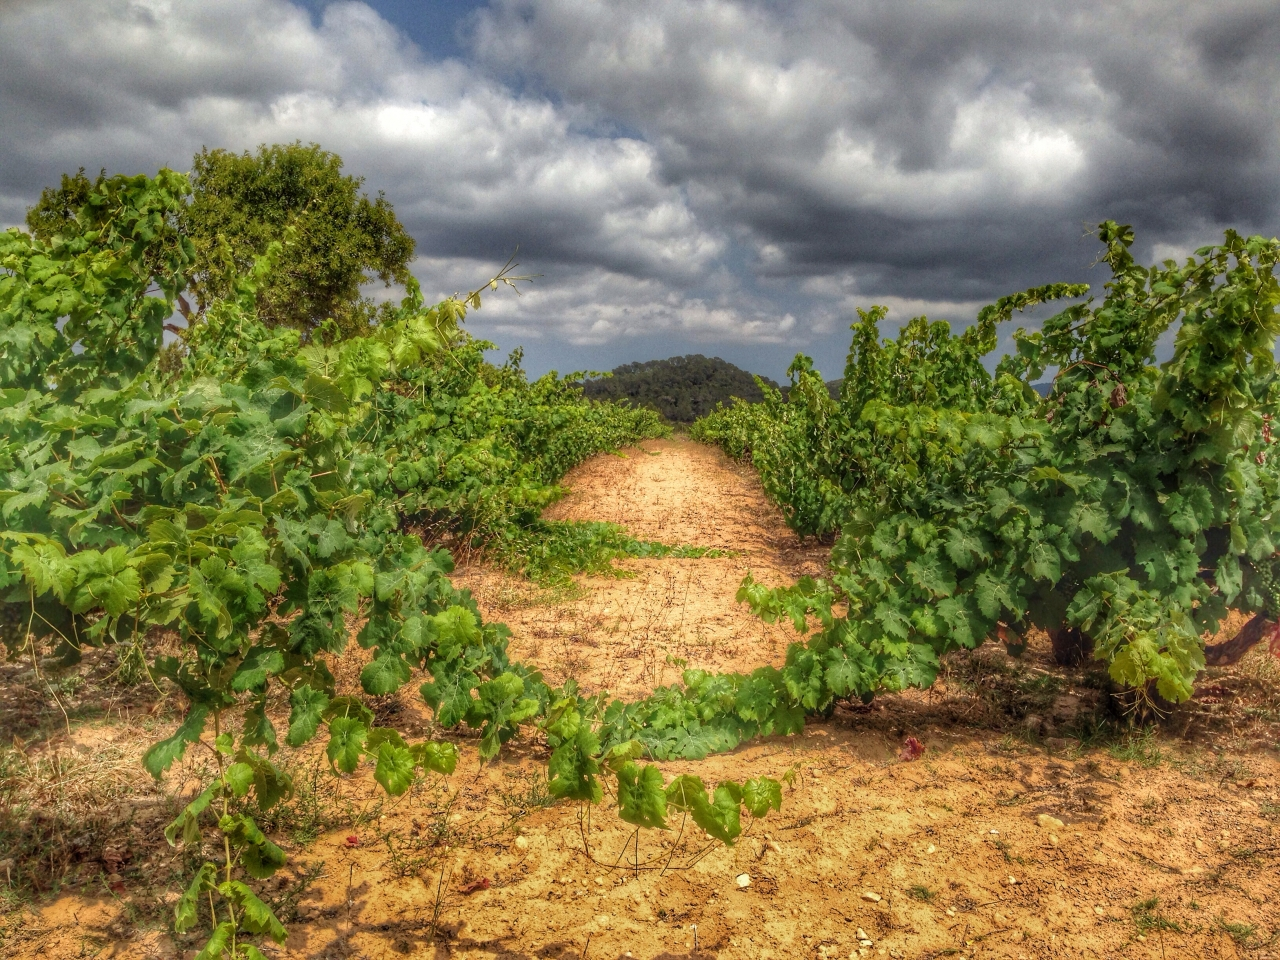 #21daysworld#ibiza day 16 road/path